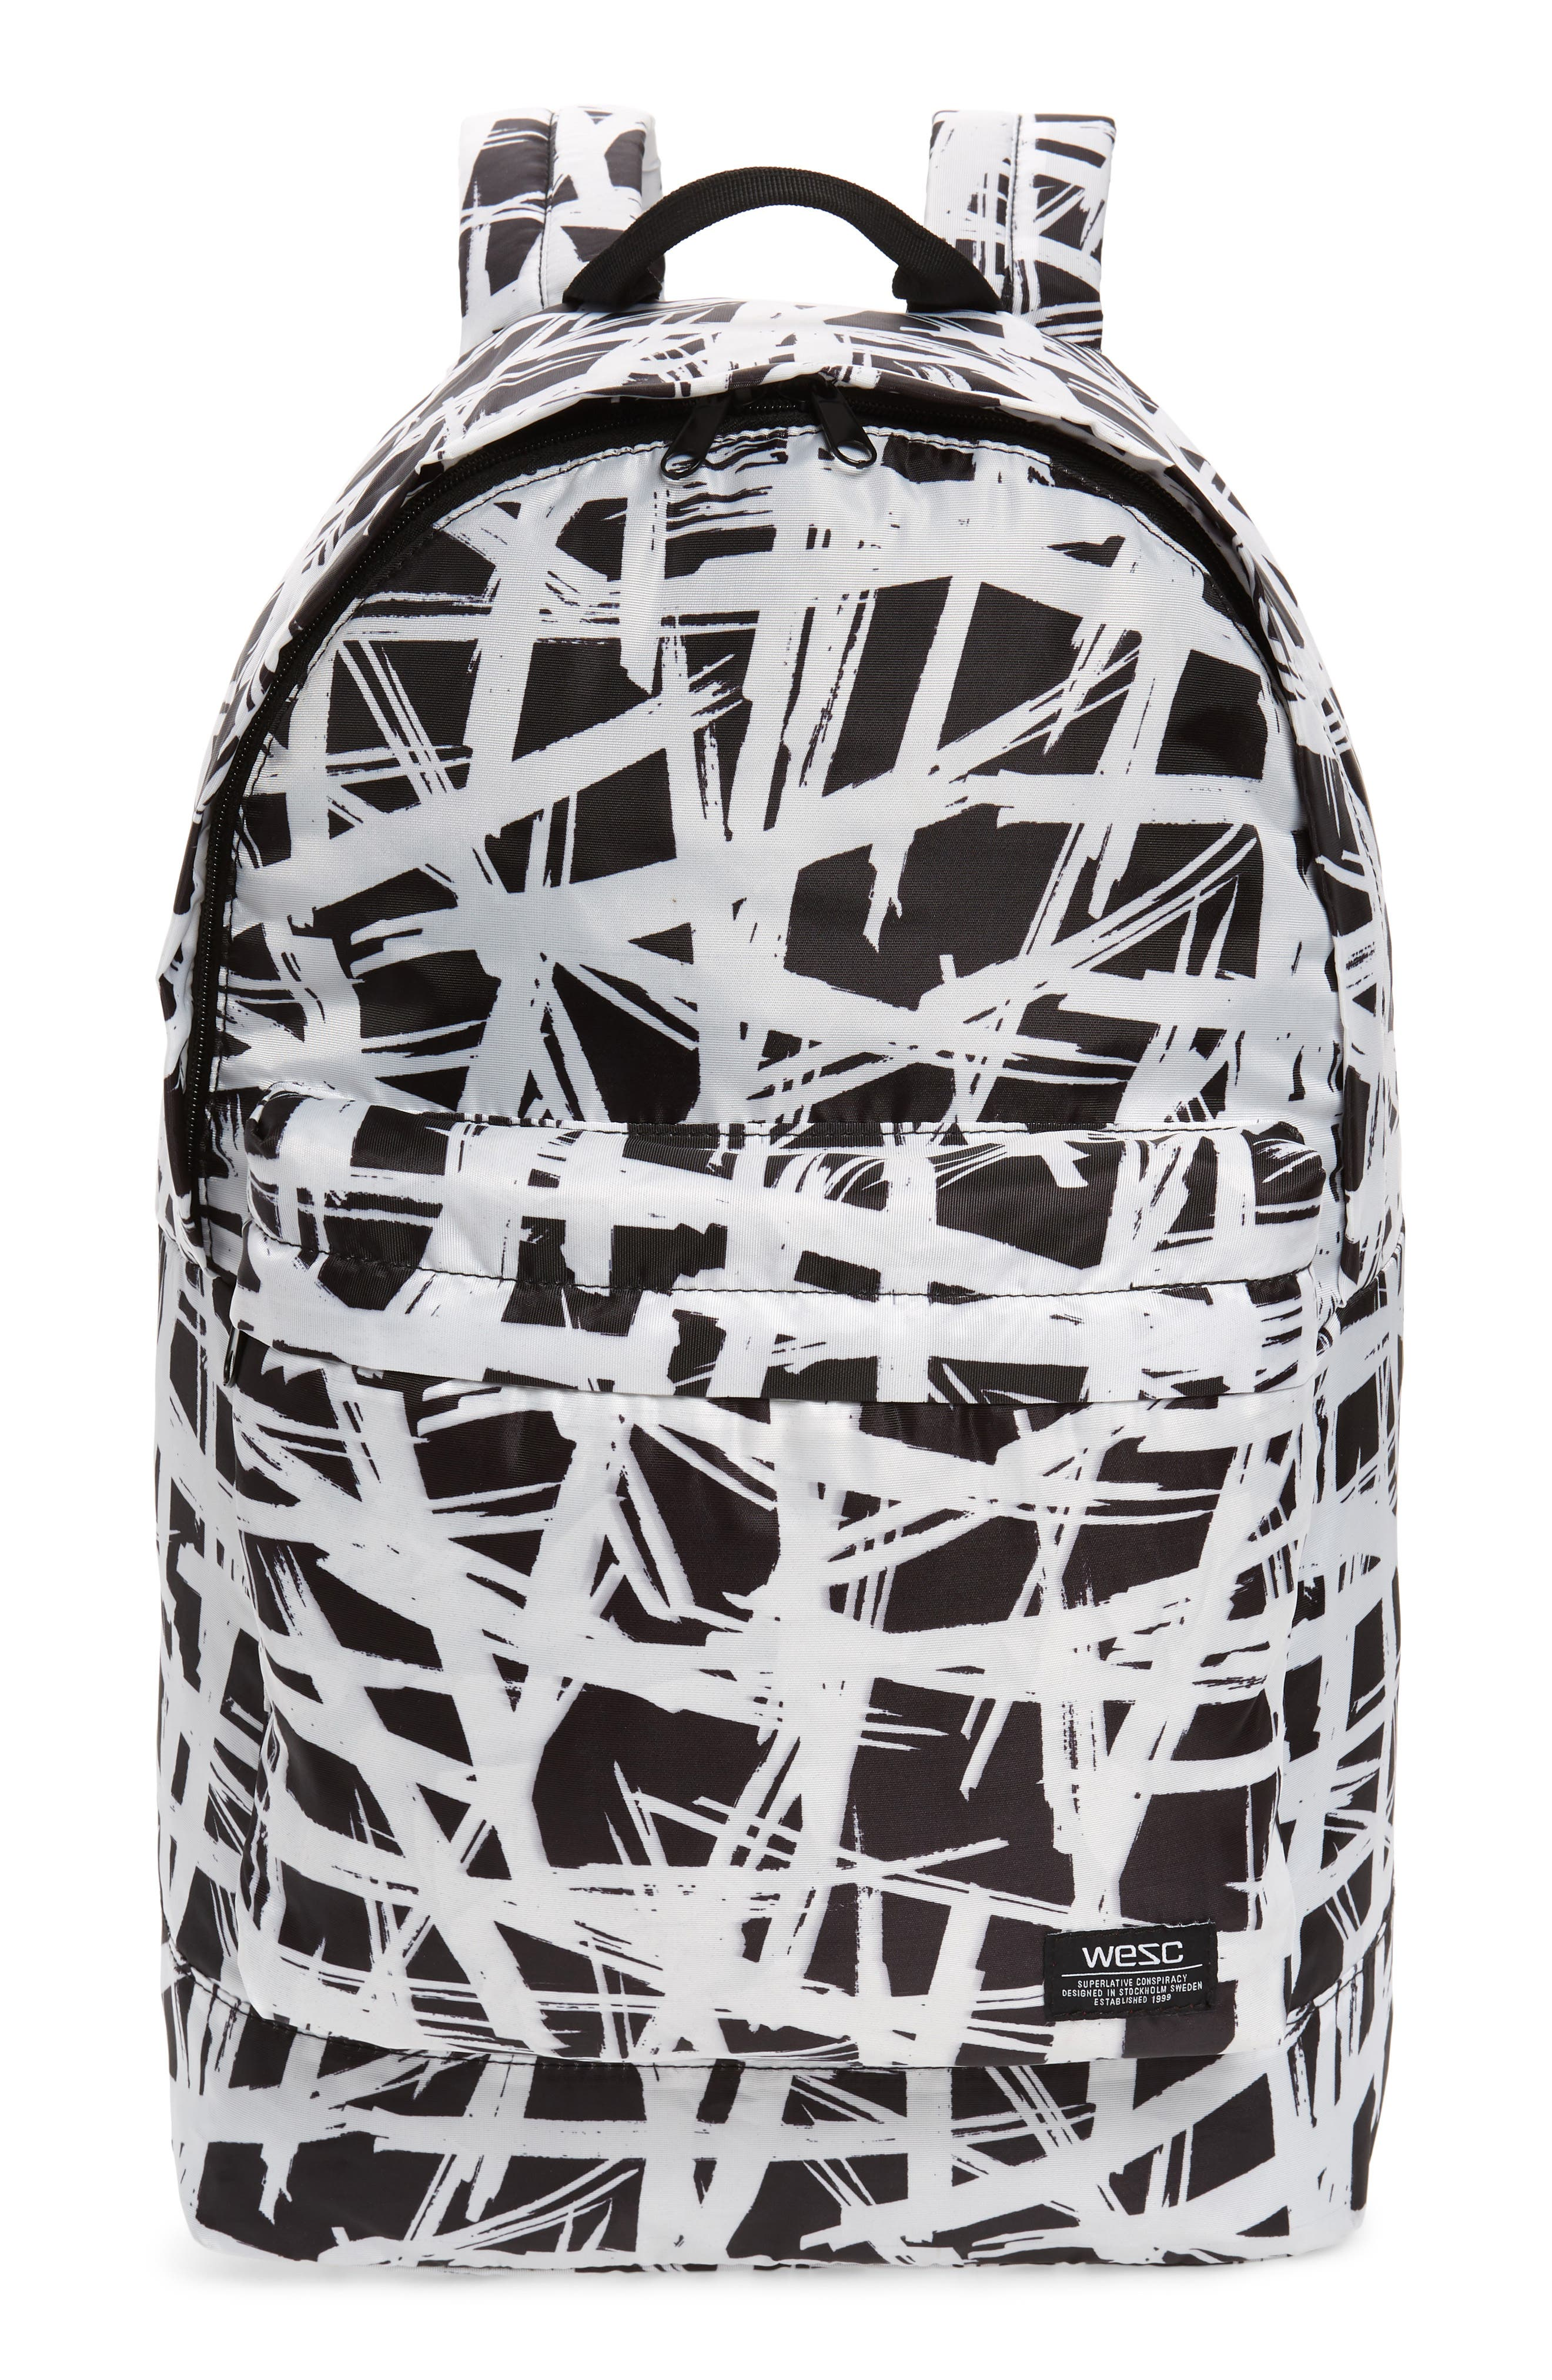 Wesc Chaz Abstract Backpack - Black